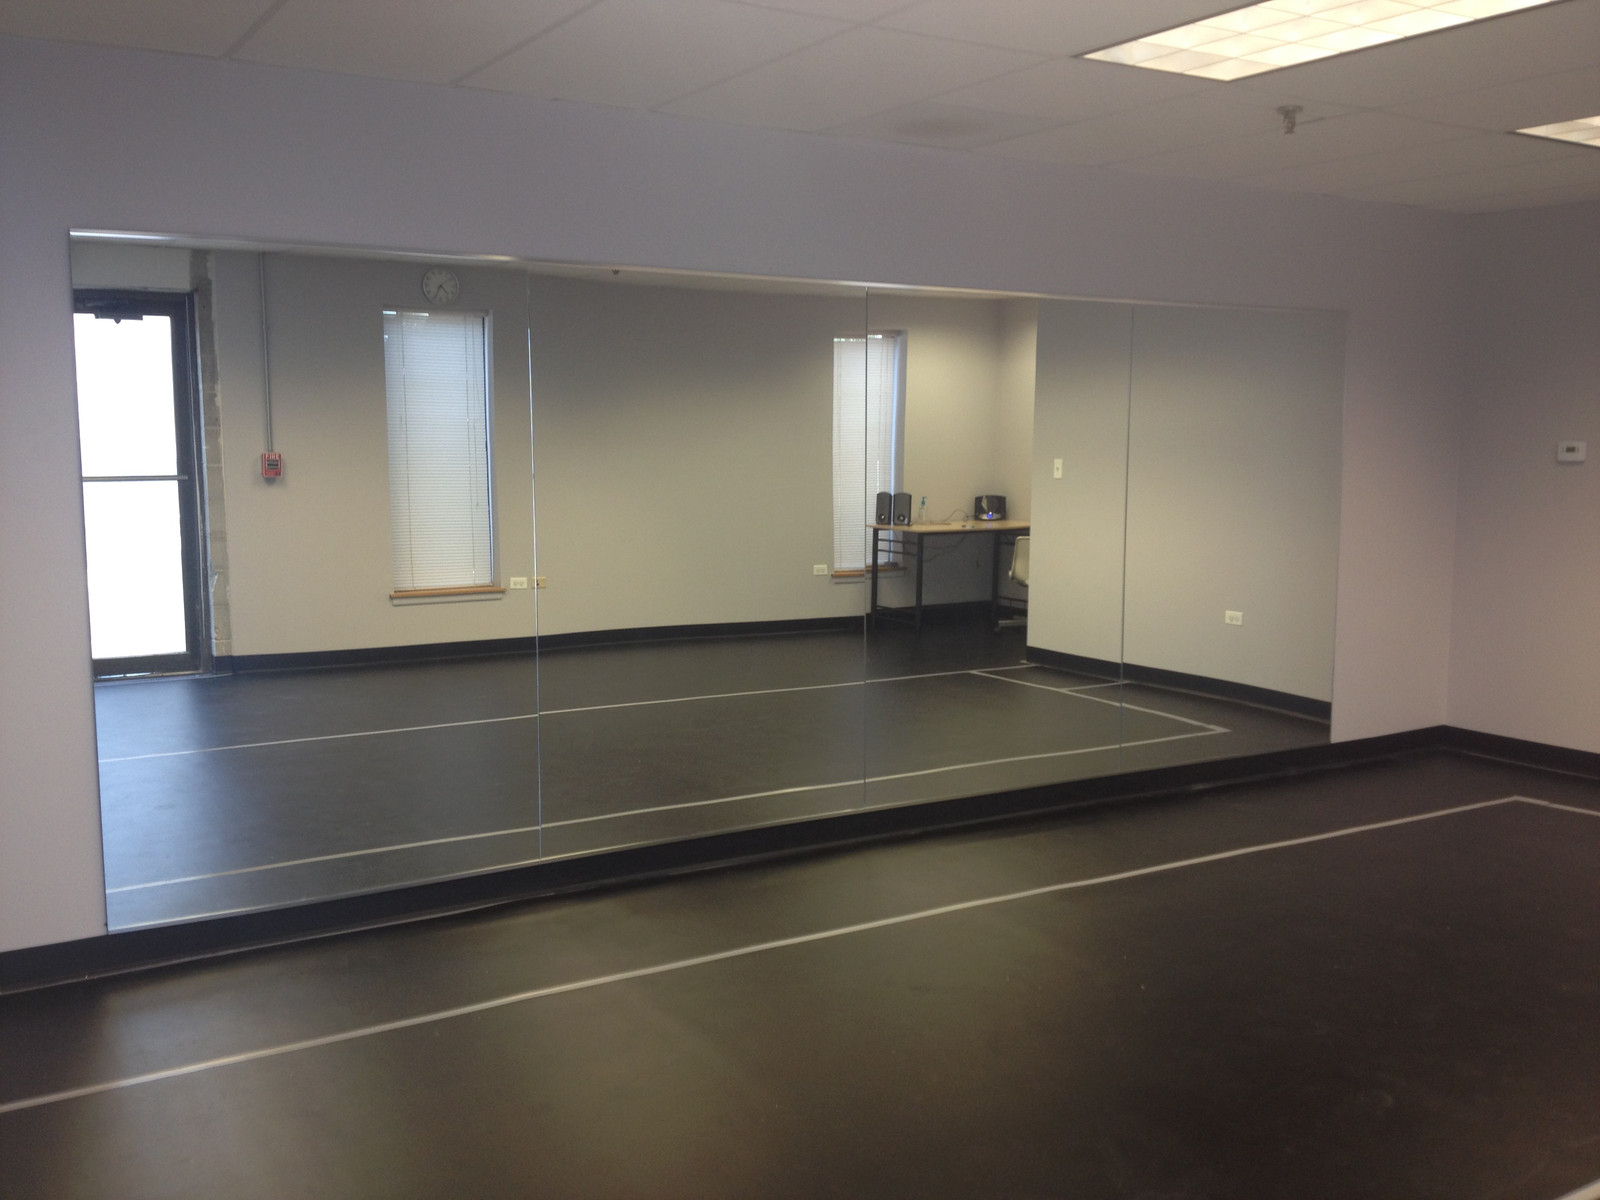 Most Current Dance Wall Mirrors Intended For Dance Studio C (View 12 of 20)